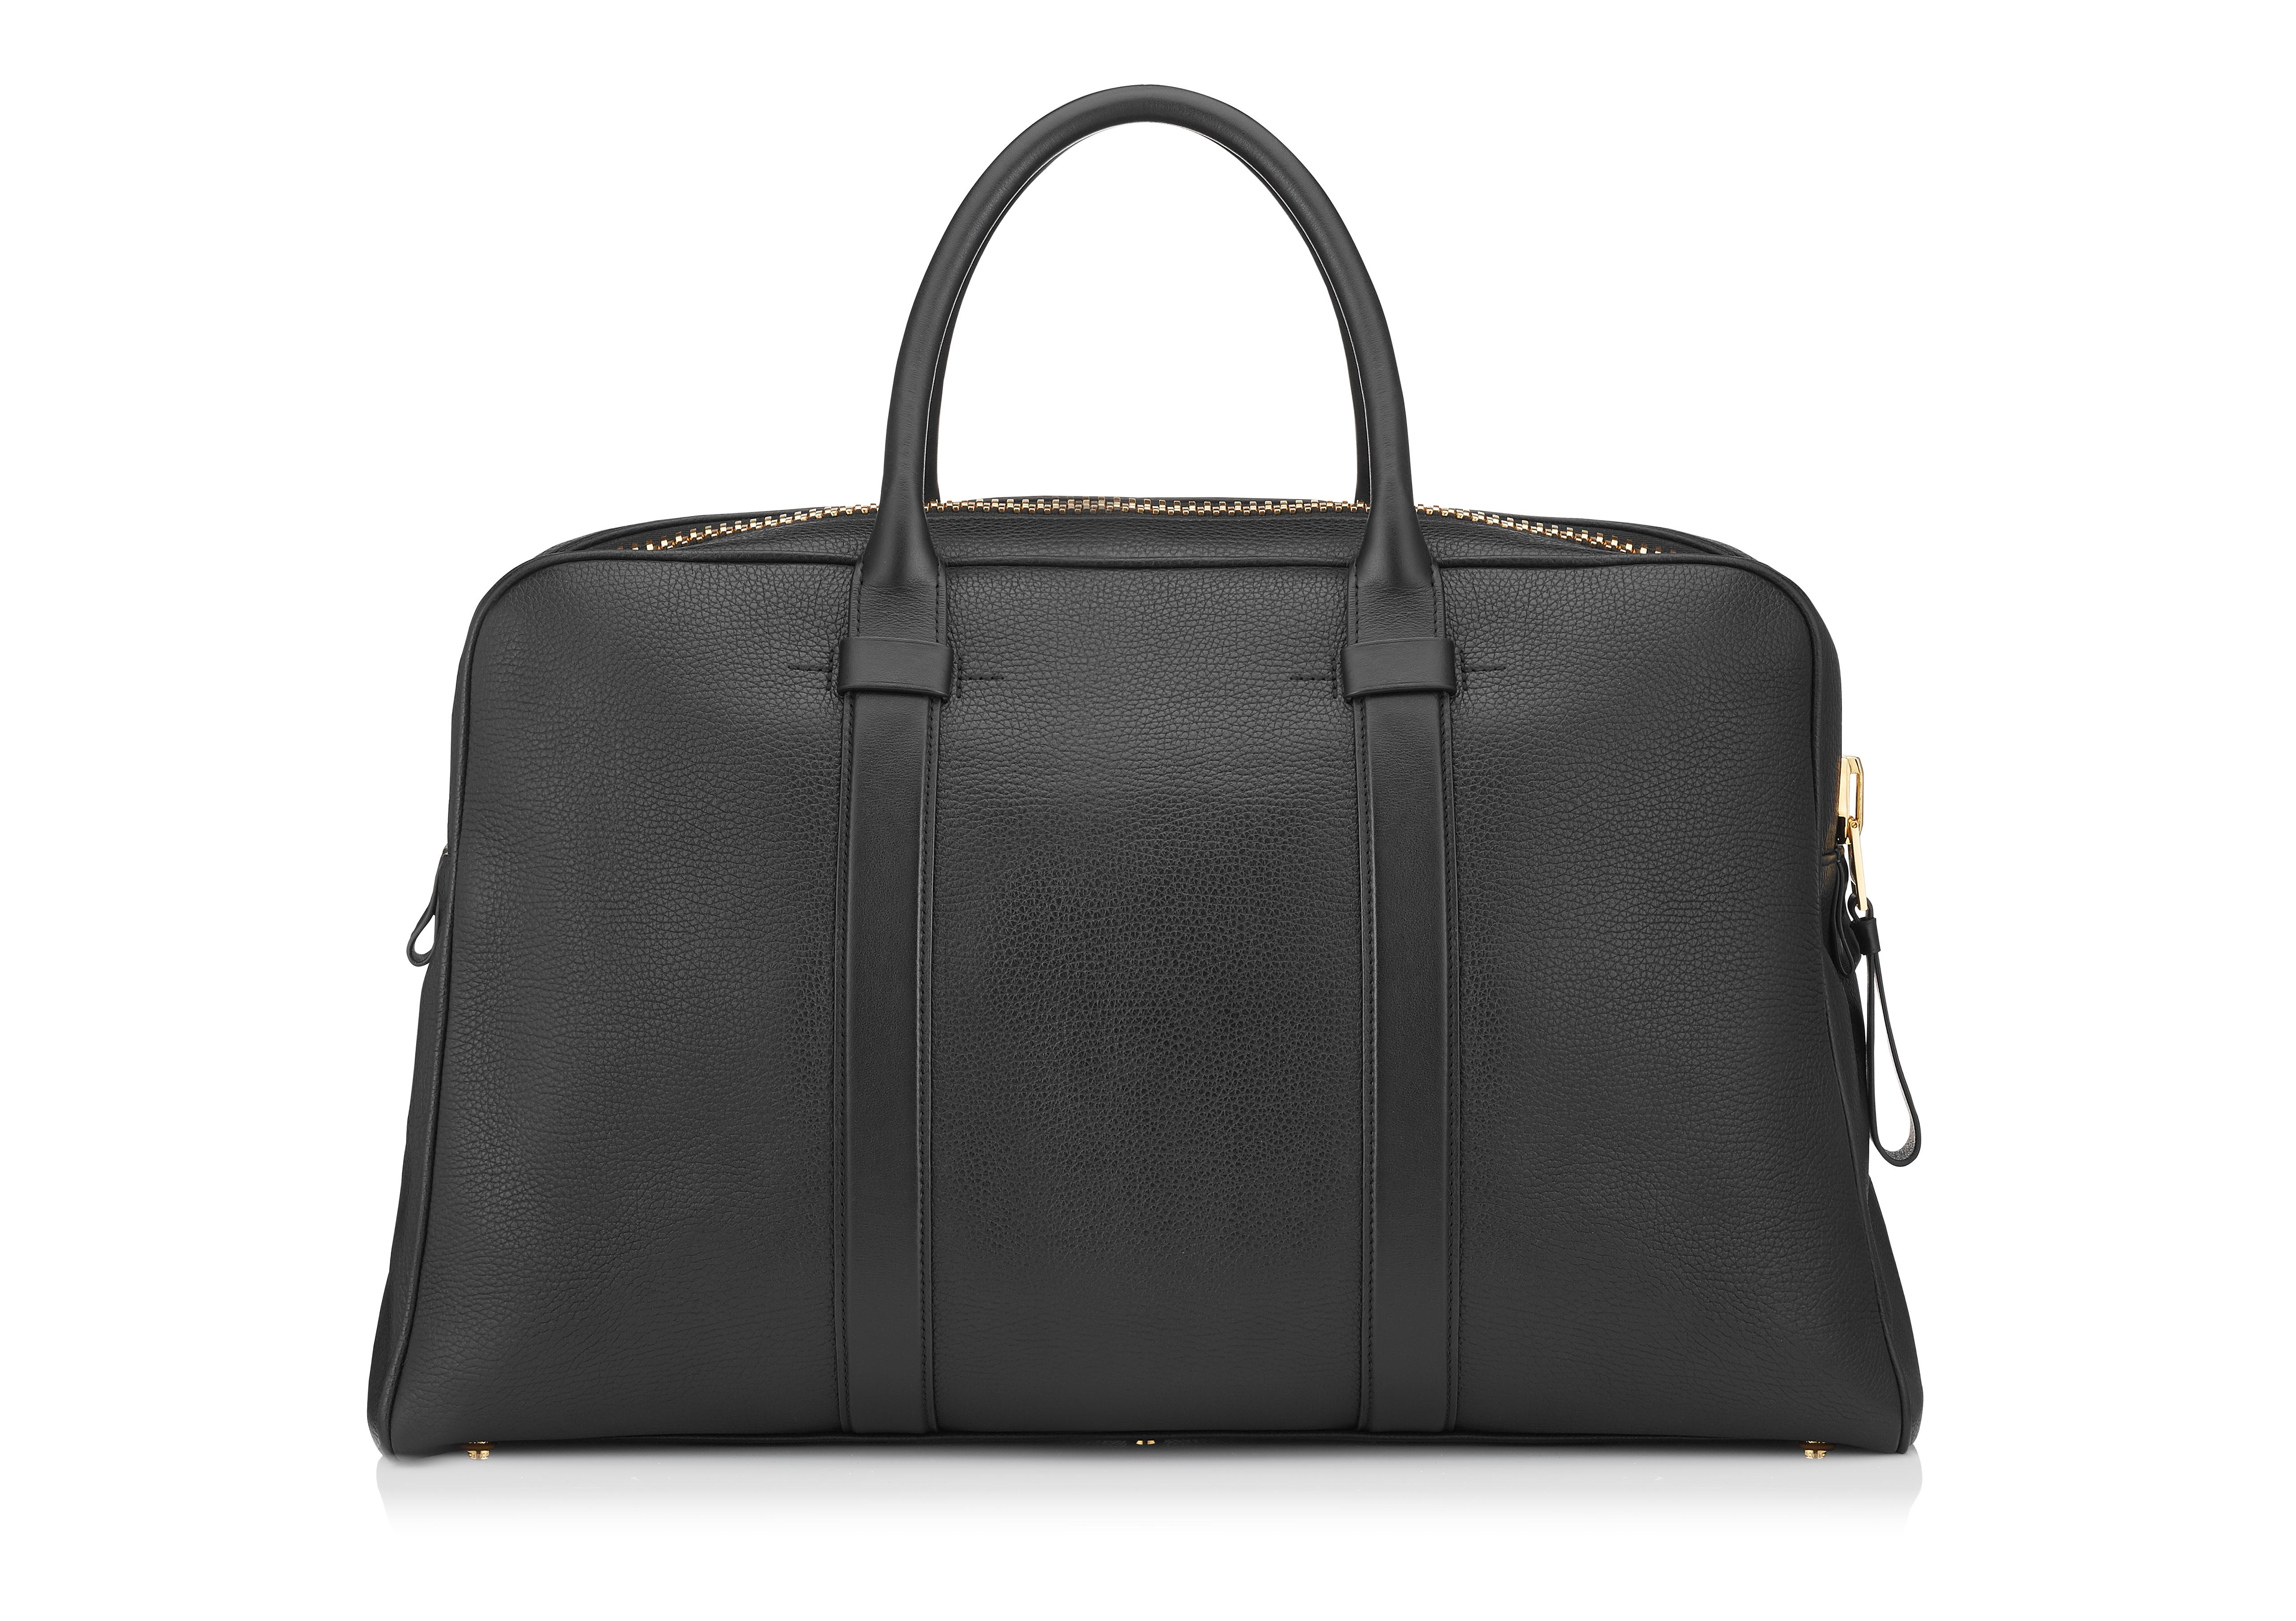 BUCKLEY LEATHER FLAT TRAPEZE BRIEFCASE B thumbnail